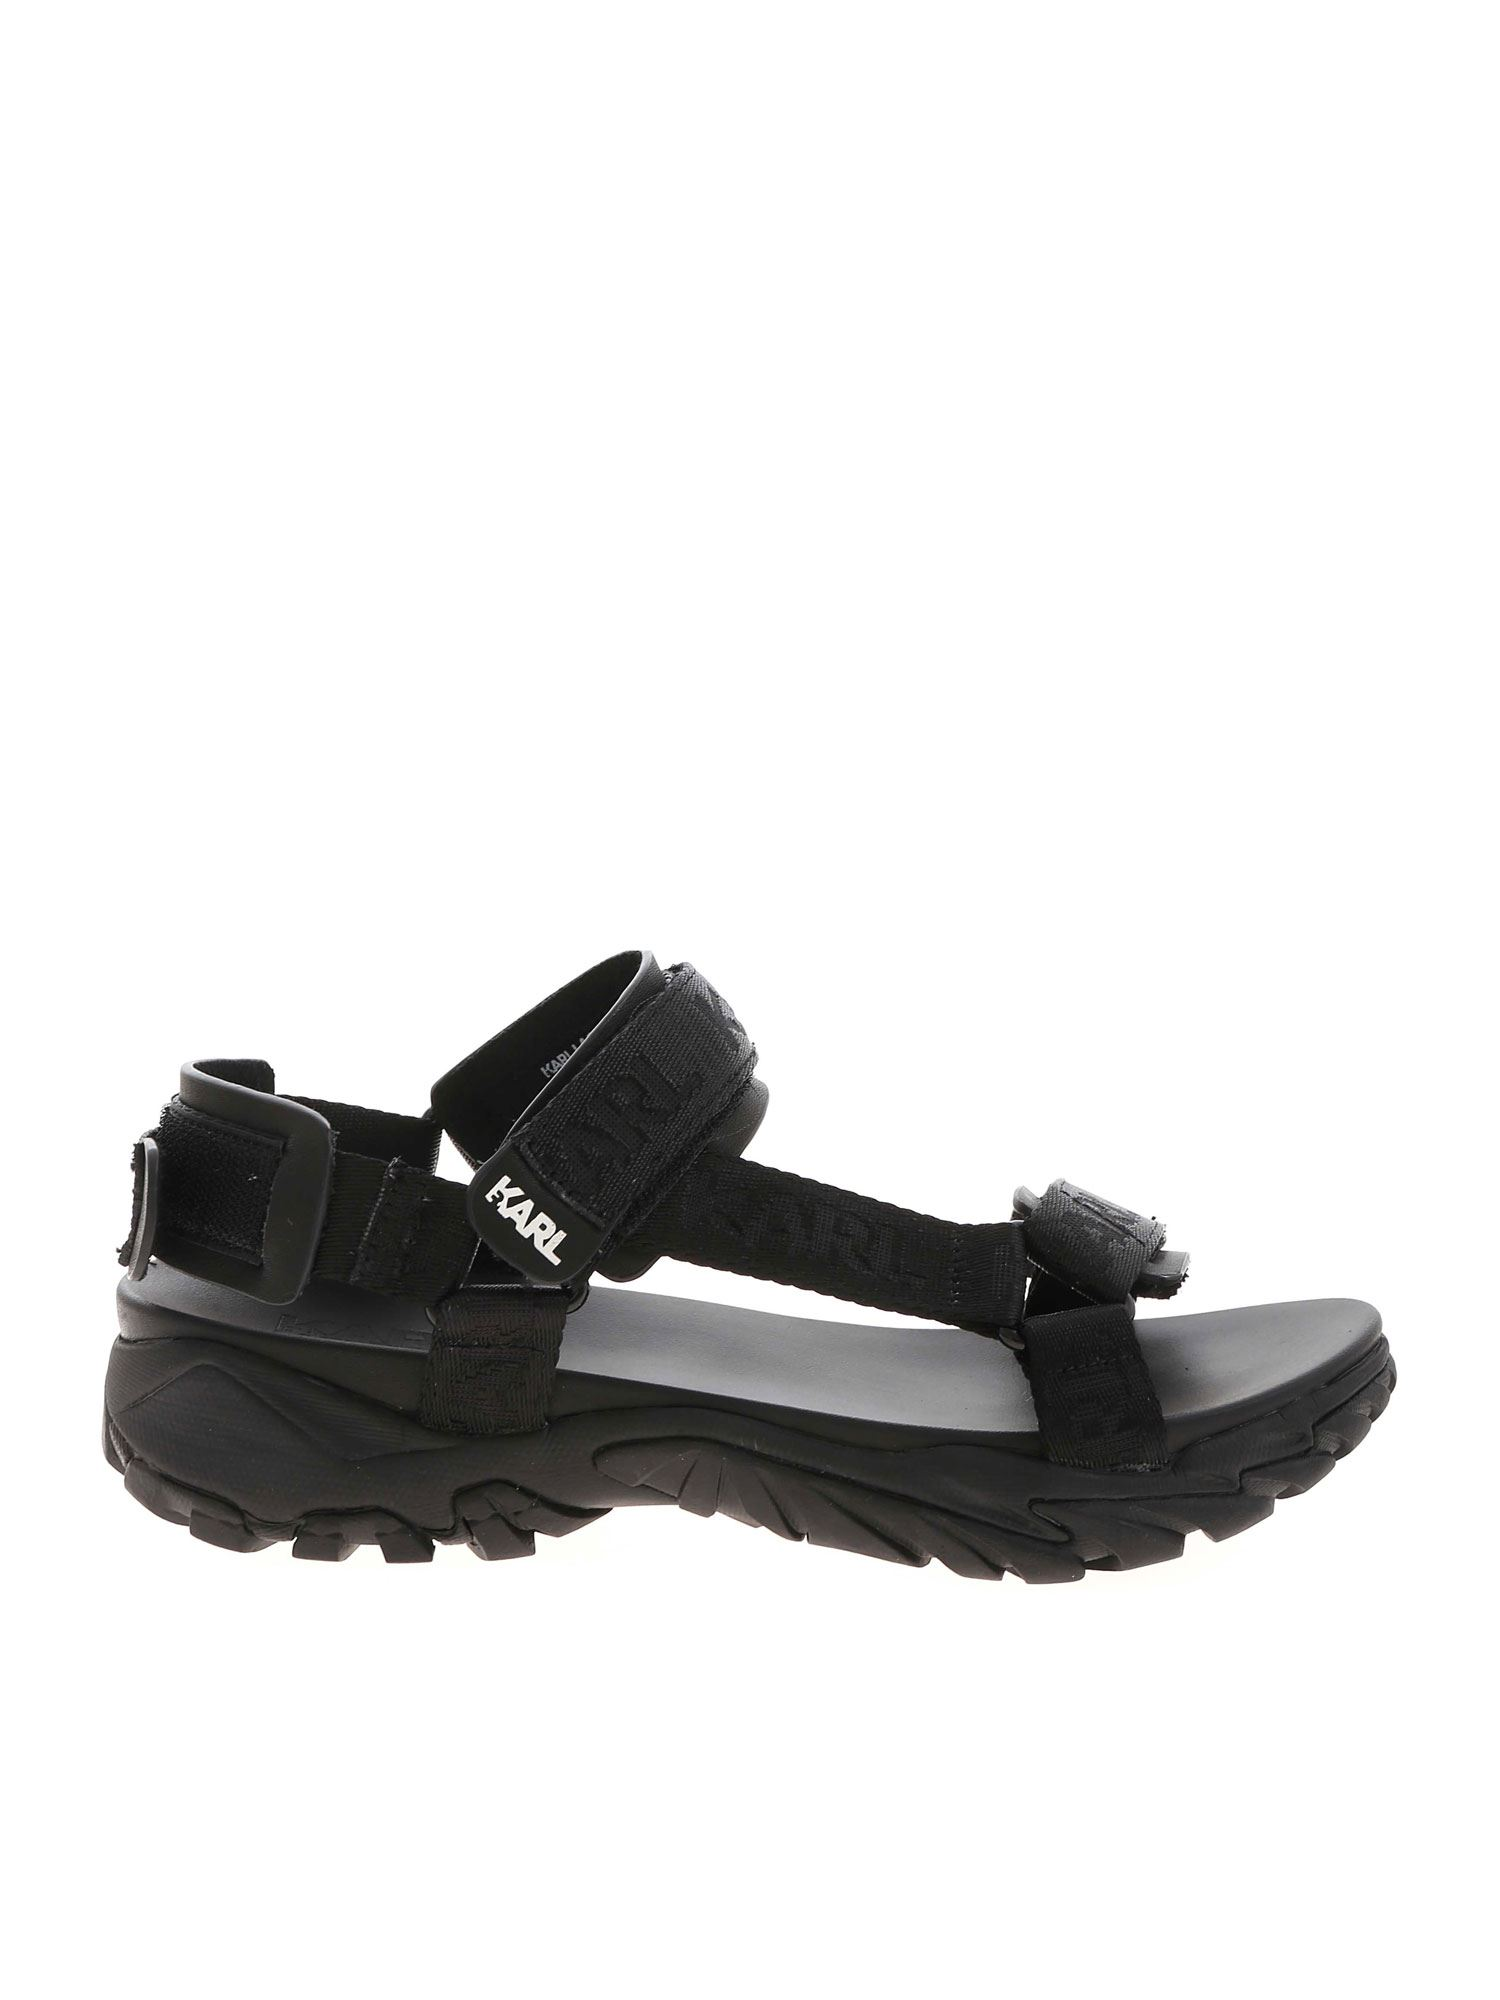 Karl Lagerfeld VOLT AKTIV SANDALS IN BLACK